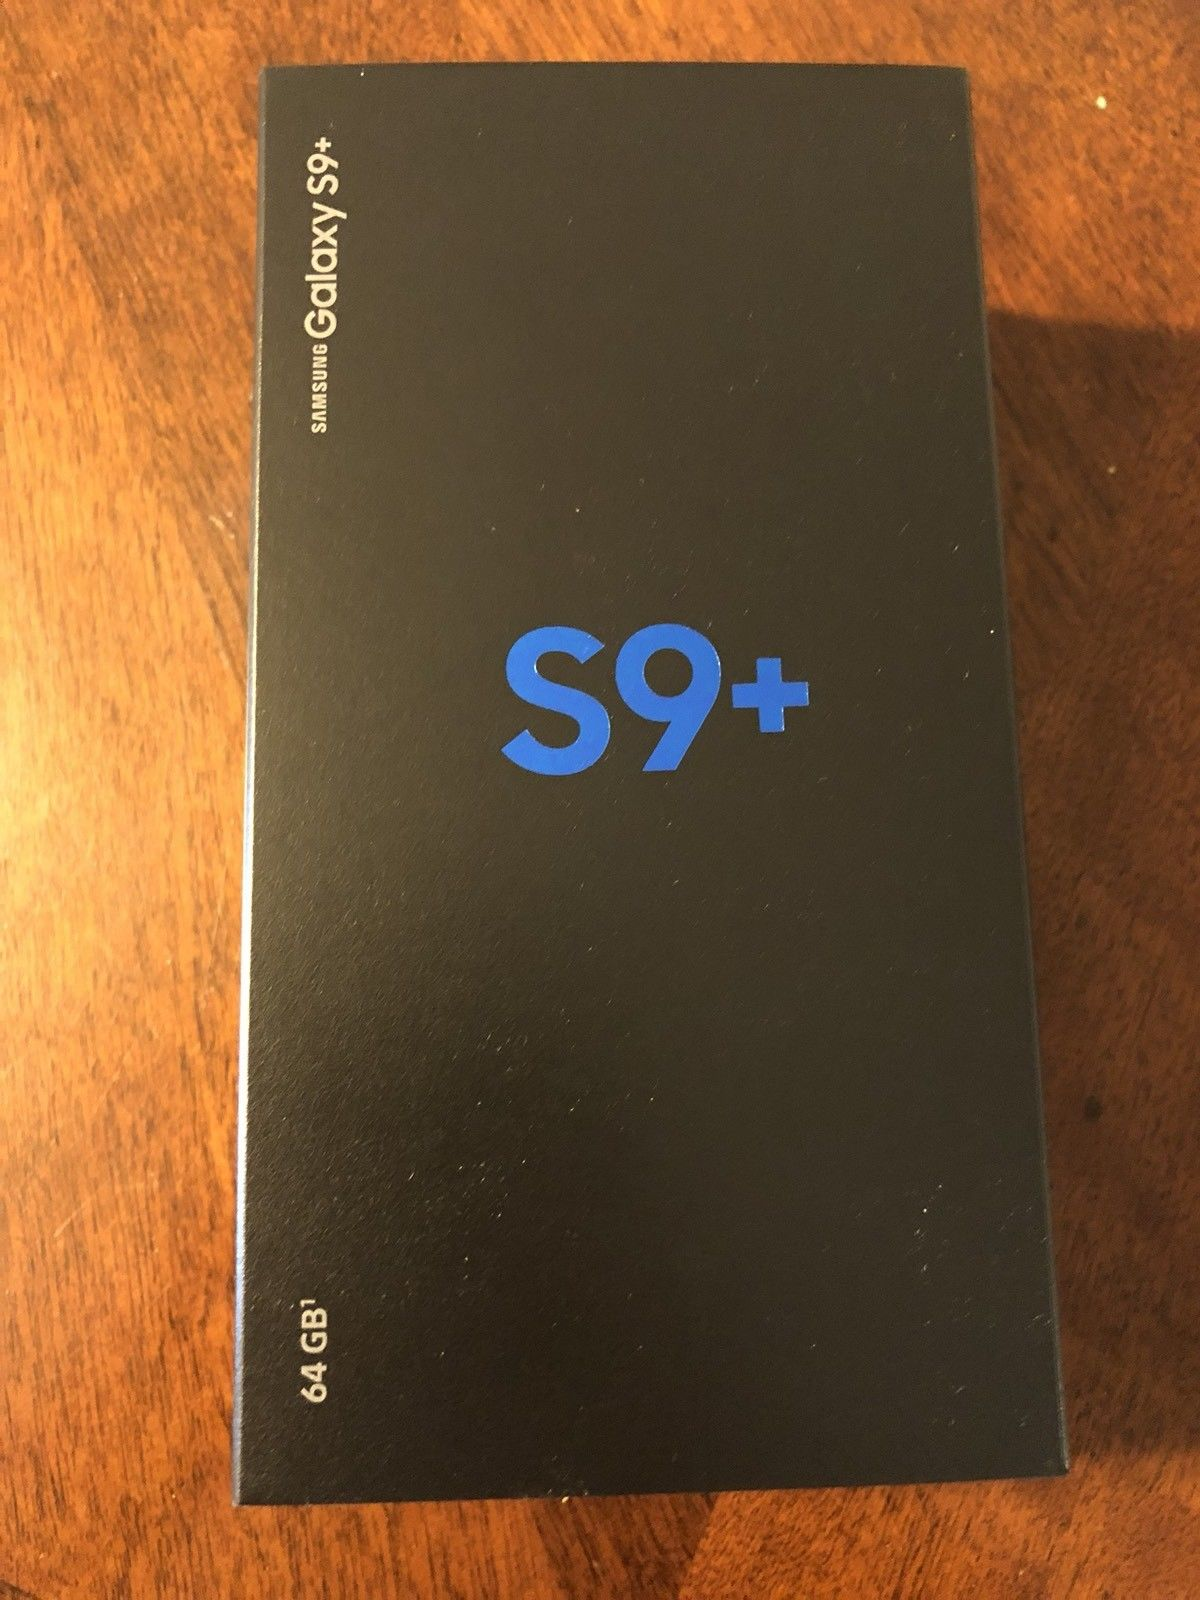 Selling Original : Samsung S9 Plus,iPhone x,S8 Plus,Note 8,iPhone 7 Plus